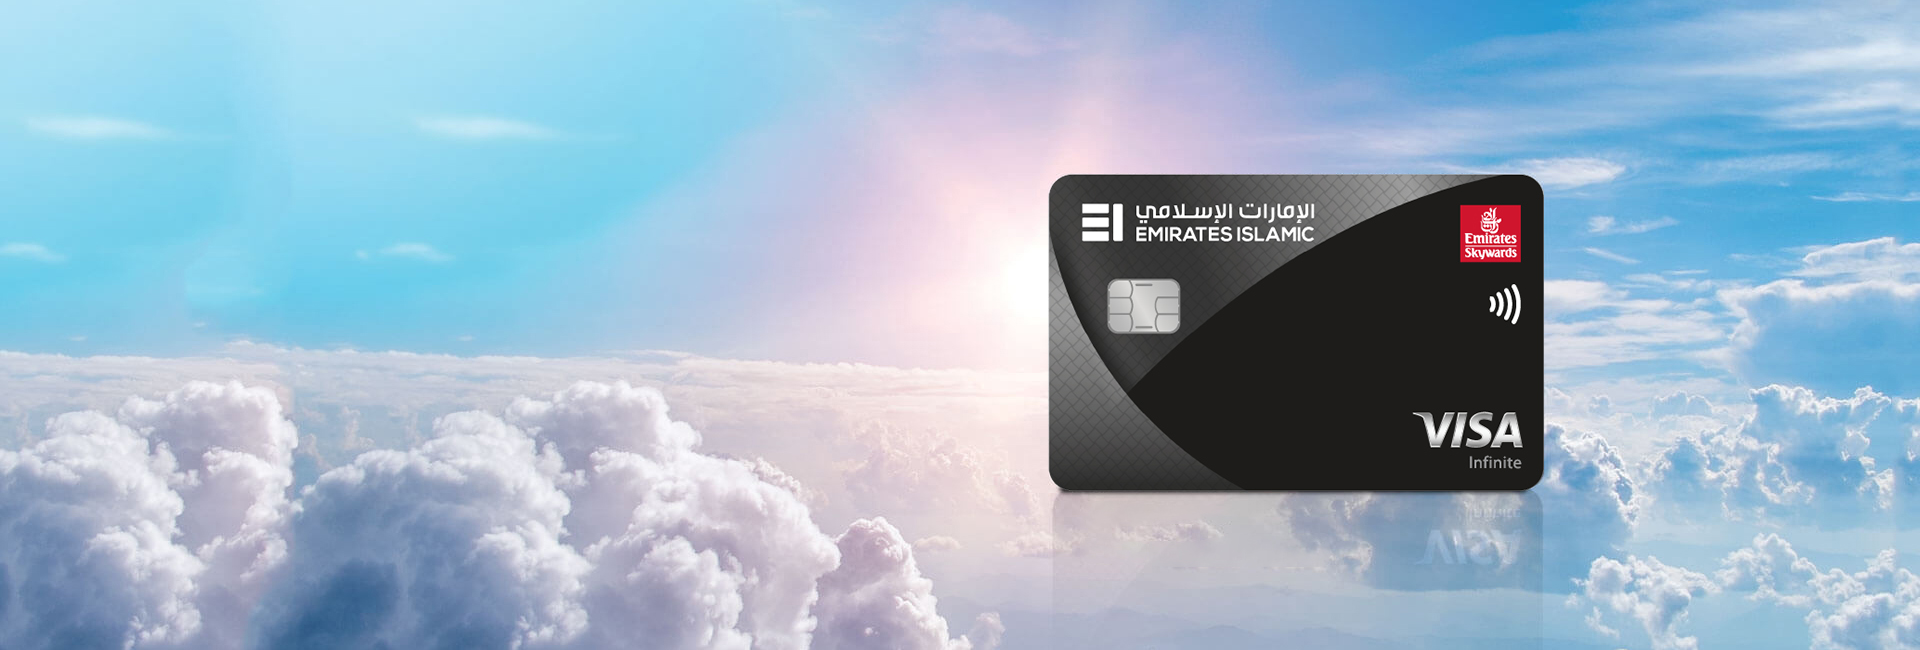 Emirates Islamic Skywards Infinite Credit Card